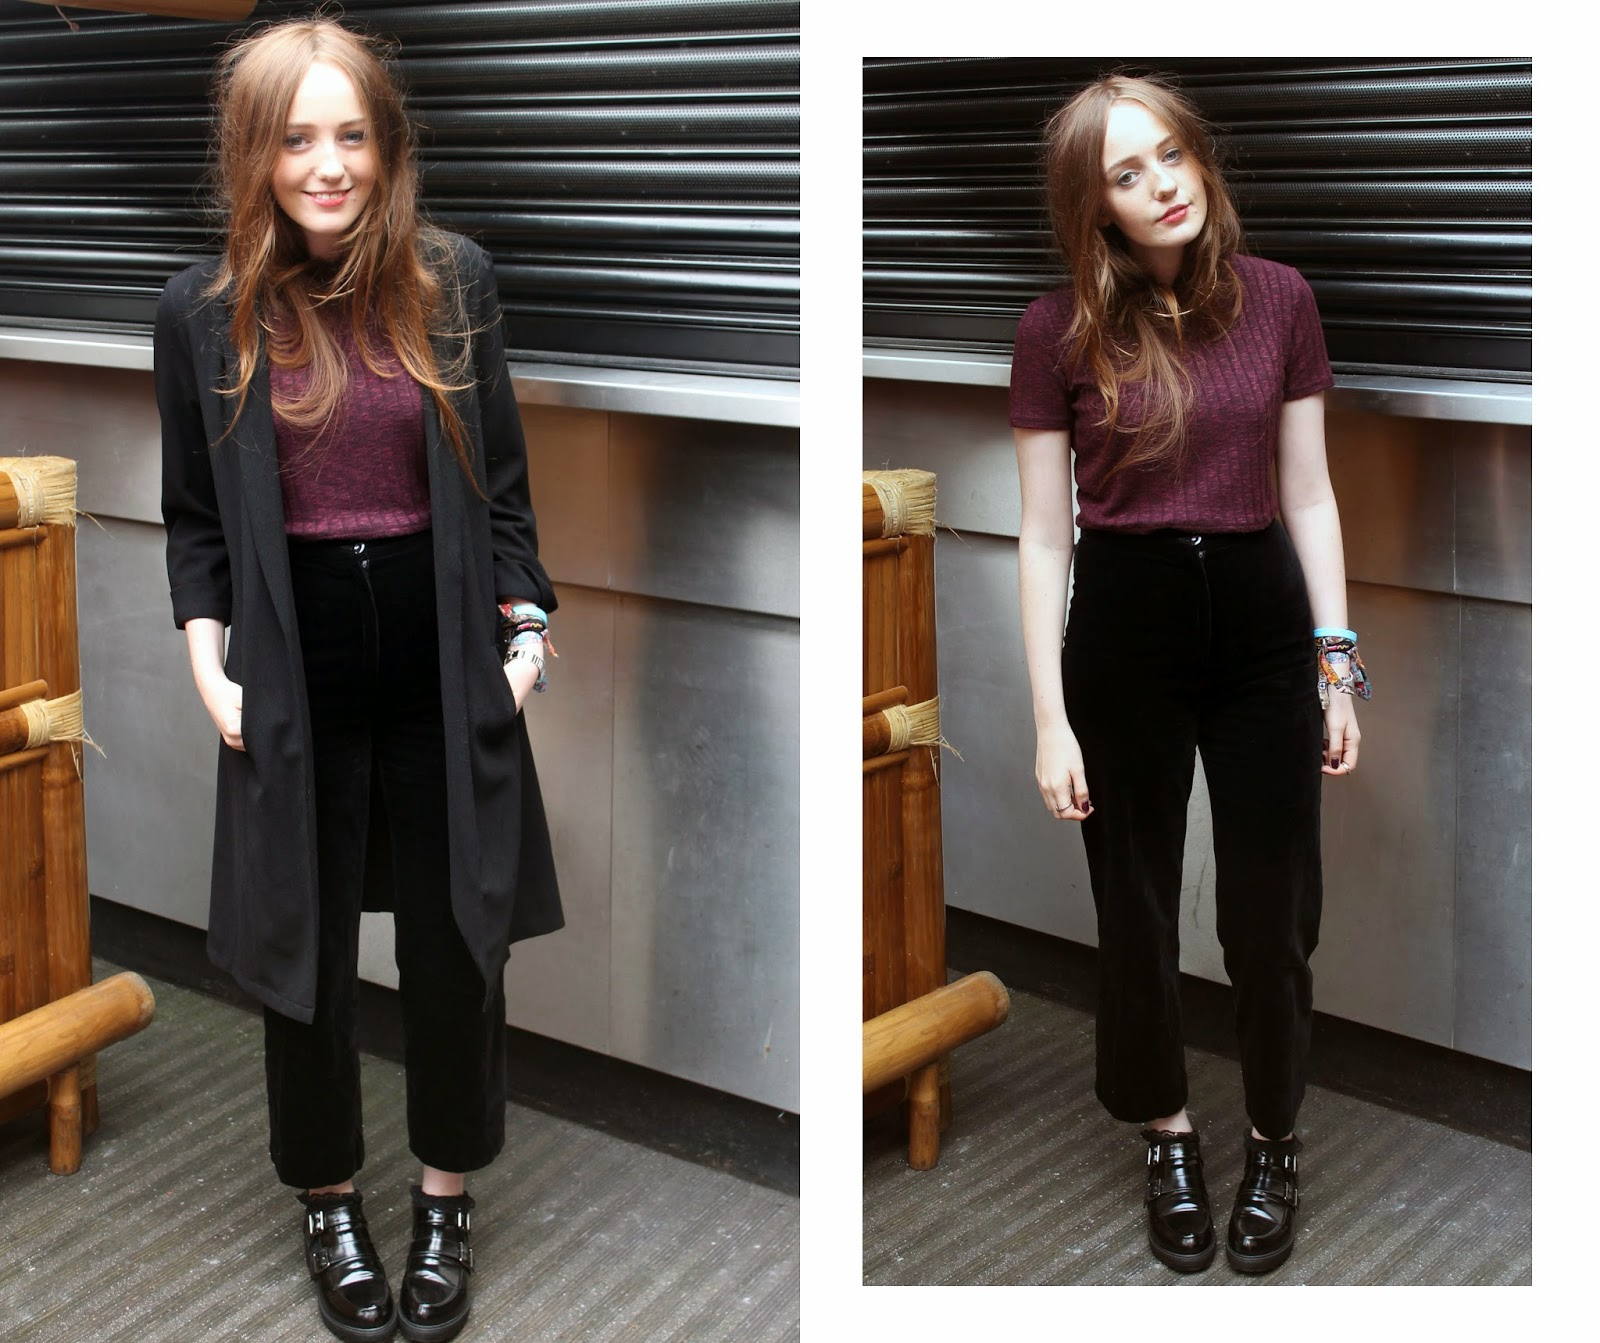 primark black duster coat, forever 21 plum crop top, velvet awkward length trousers and primark monk shoes